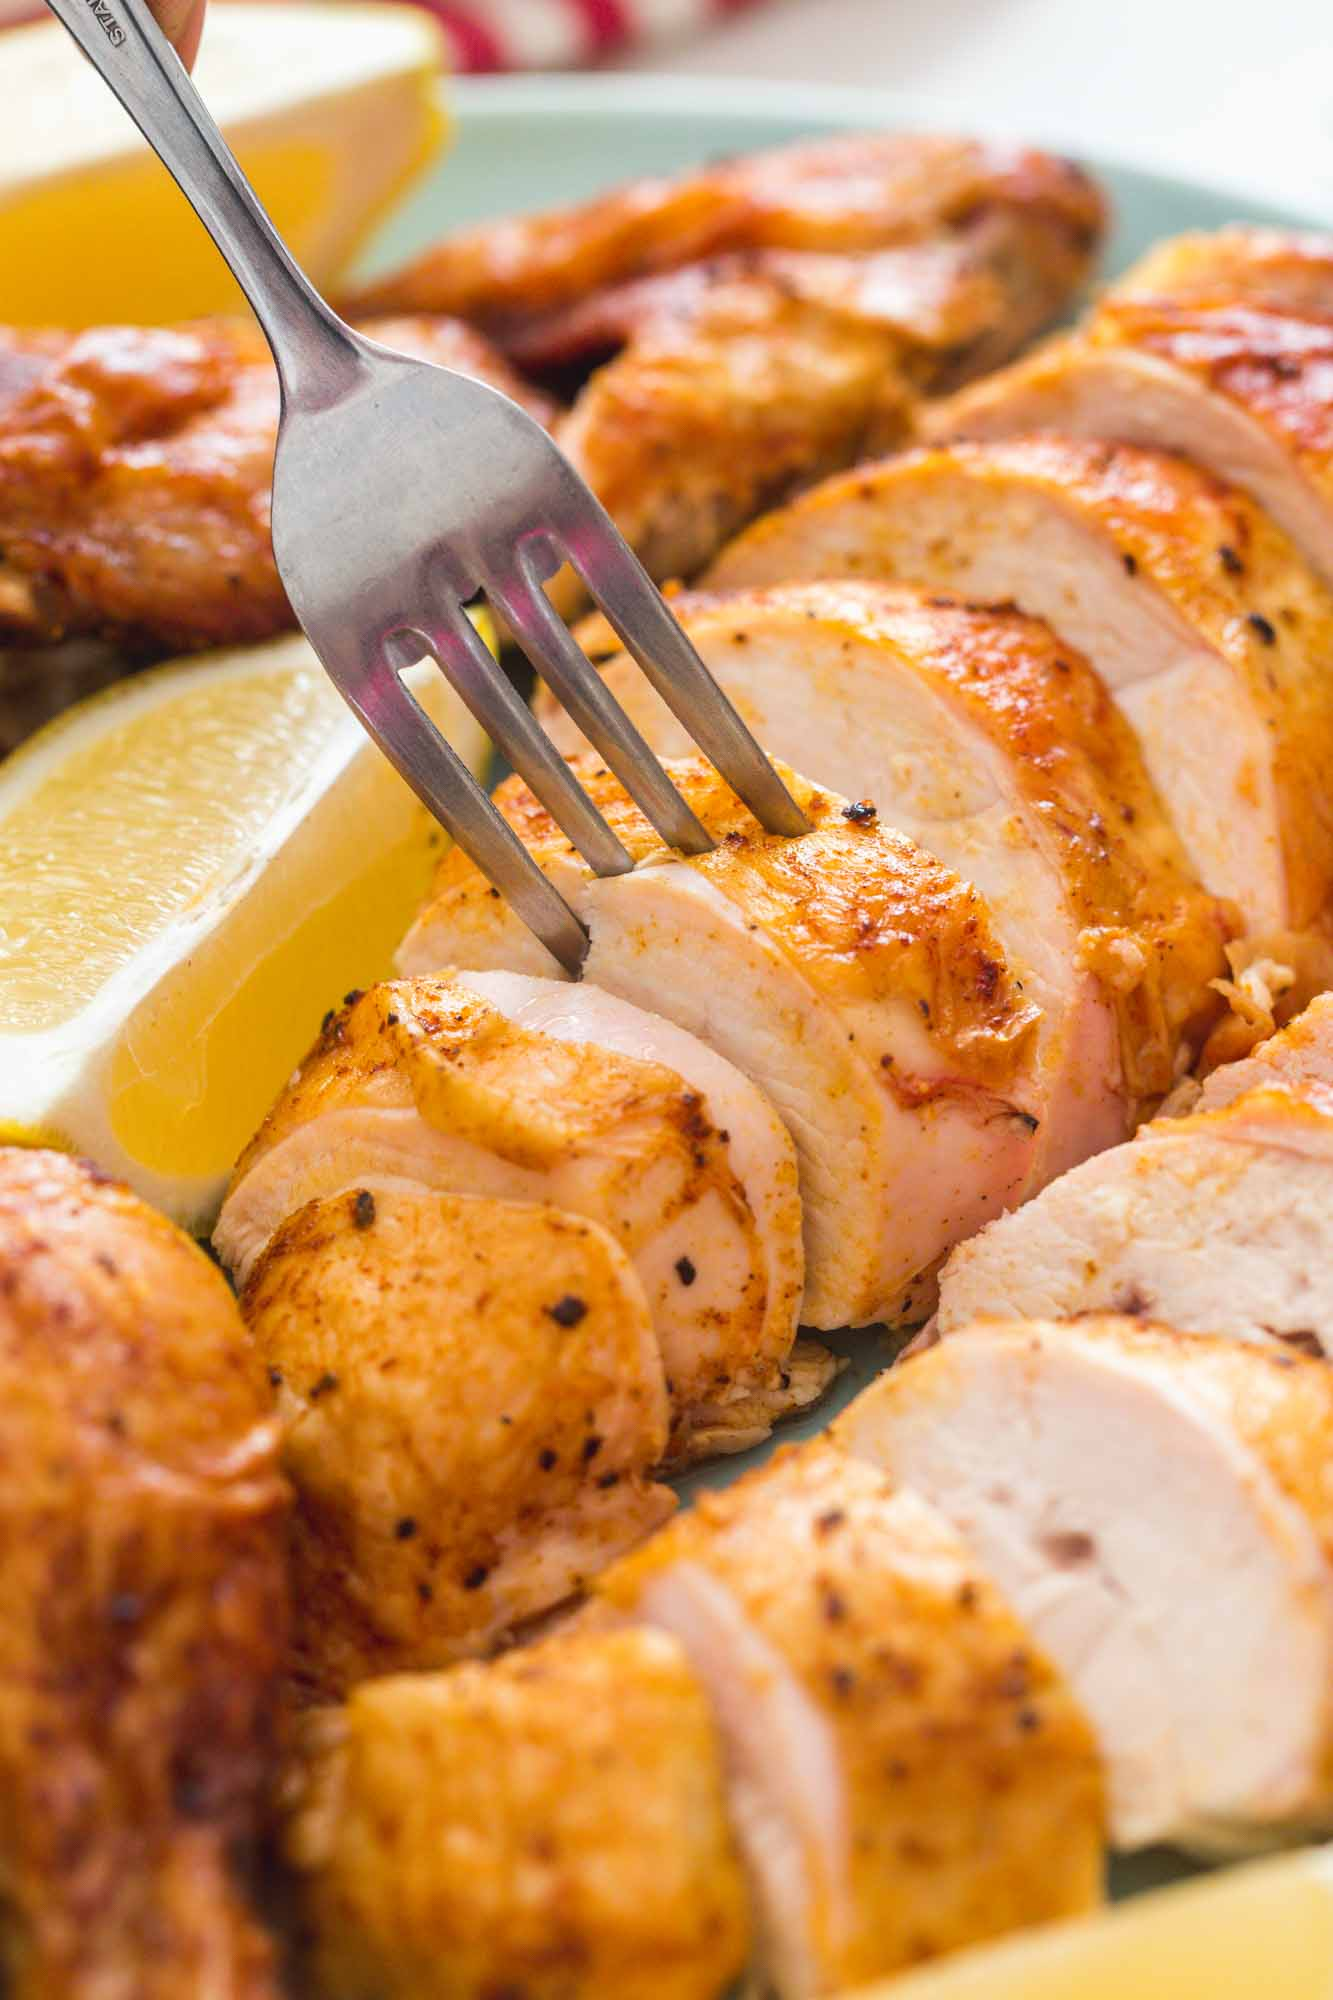 Taking a slice of crispy chicken breast that is sliced and served on a platter with lemon wedges